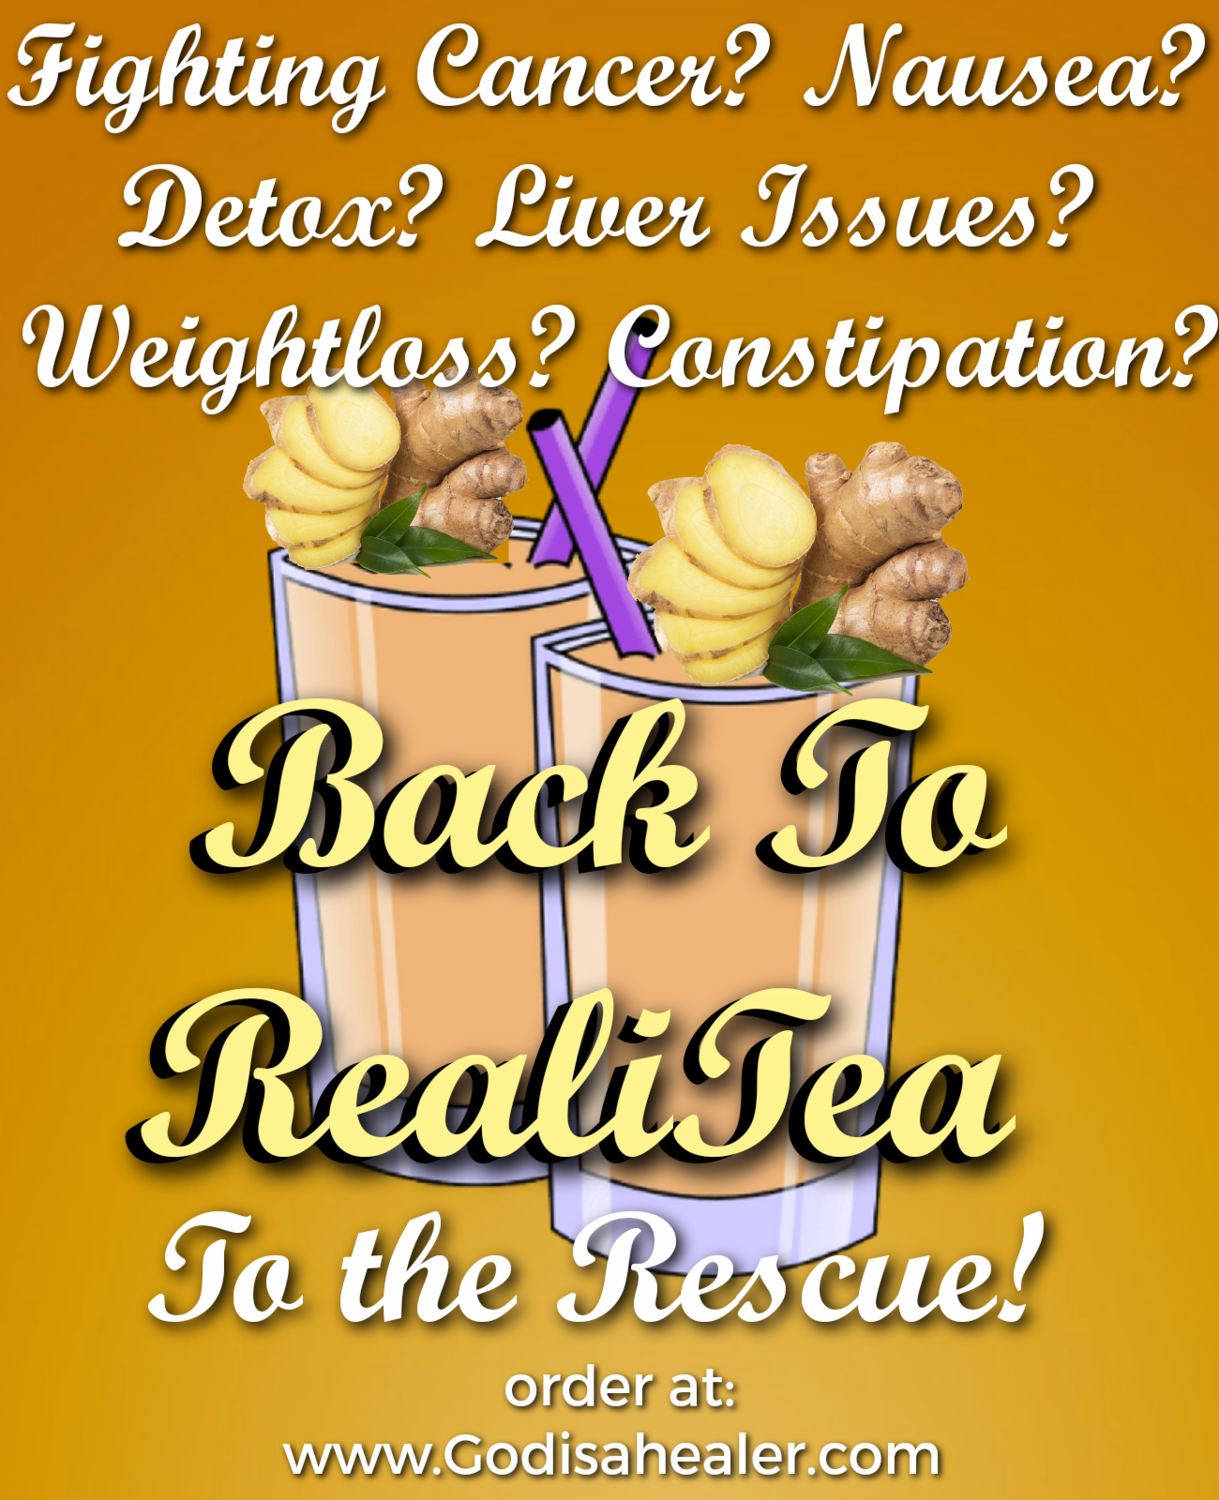 (Back To RealiTea Detox) One Gallon Tea bag  Weight loss, appetite suppressant, mild stool softener.  Besides weightloss benefits, this tea ALSO helps with nausea and digestive issues.